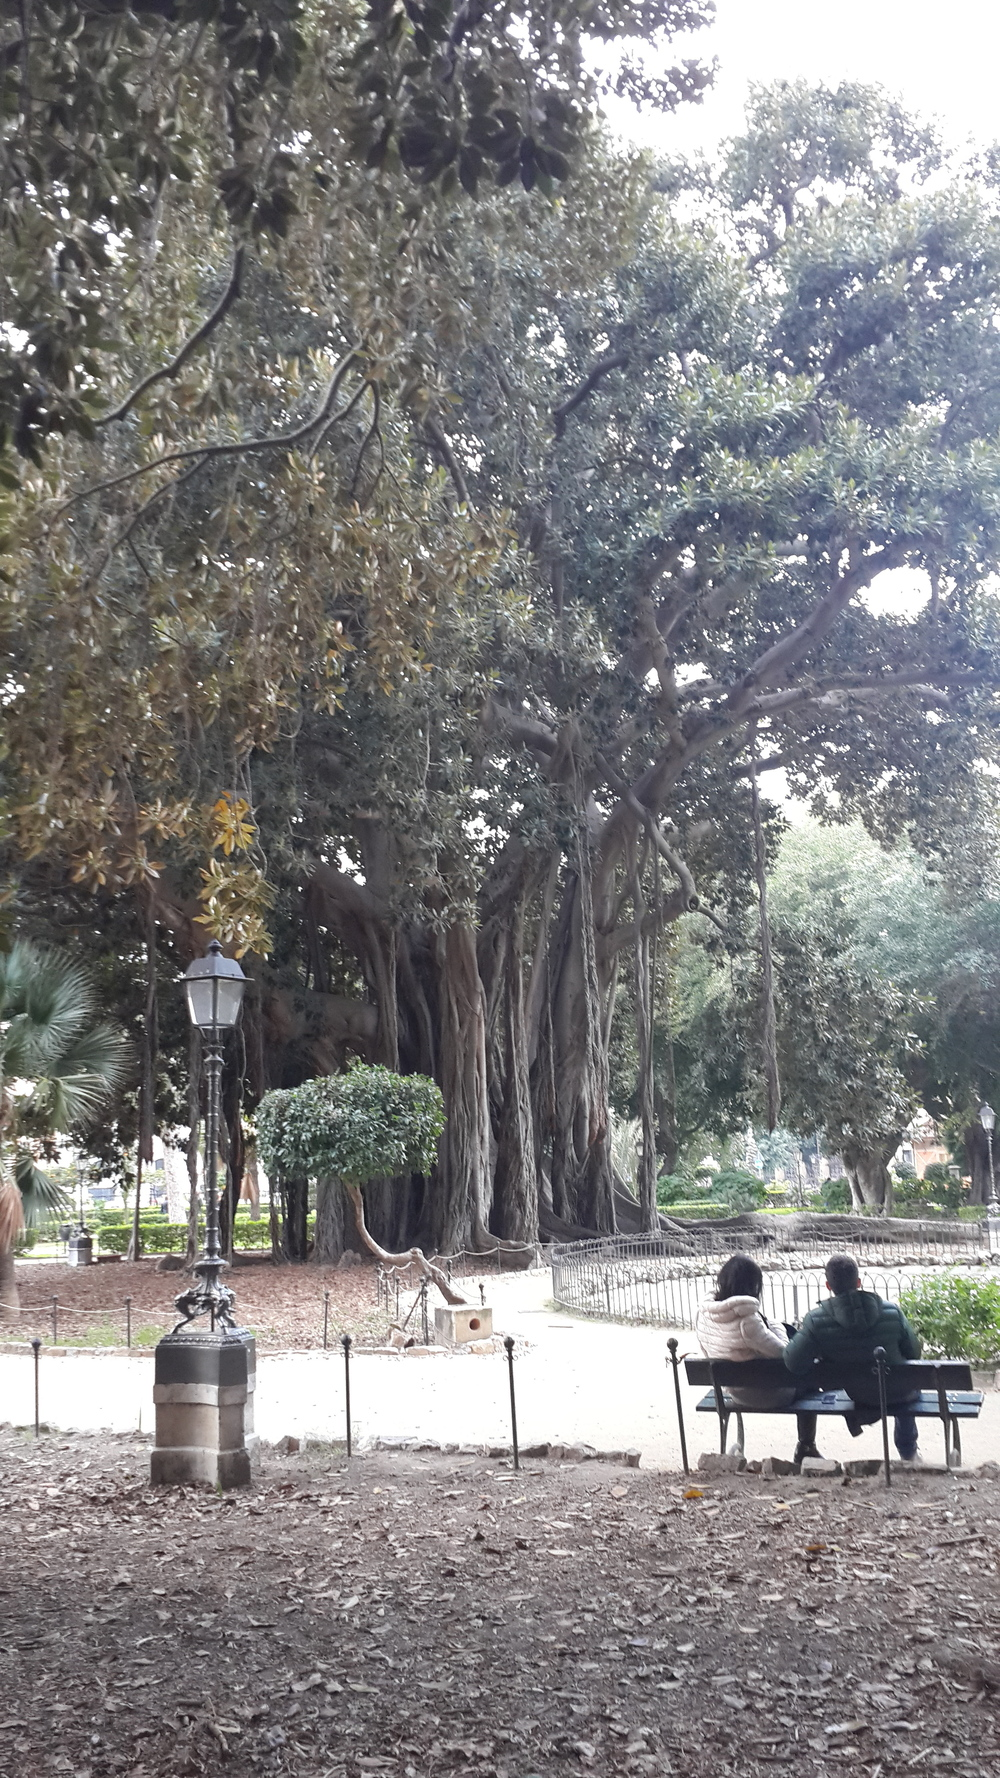 Giardino Garibaldi with huge Banyan trees